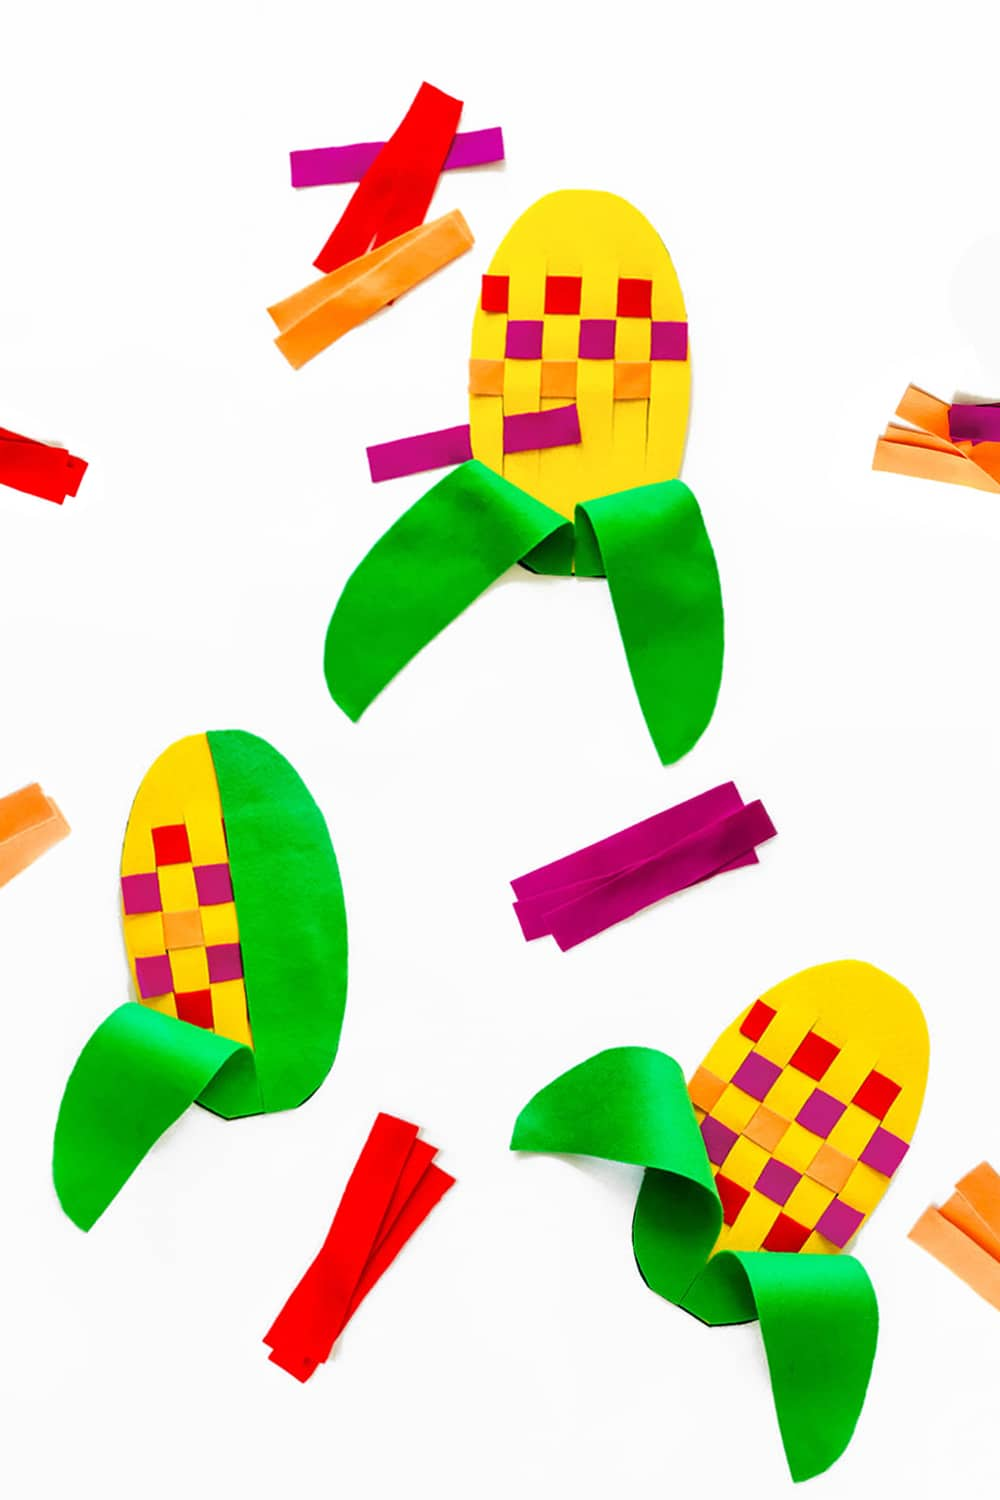 You can make this fun fall Indian corn weaving felt toy for your pre-schooler or kindergartner in minutes! Fantastic fine motor skill and pattern-making practice!